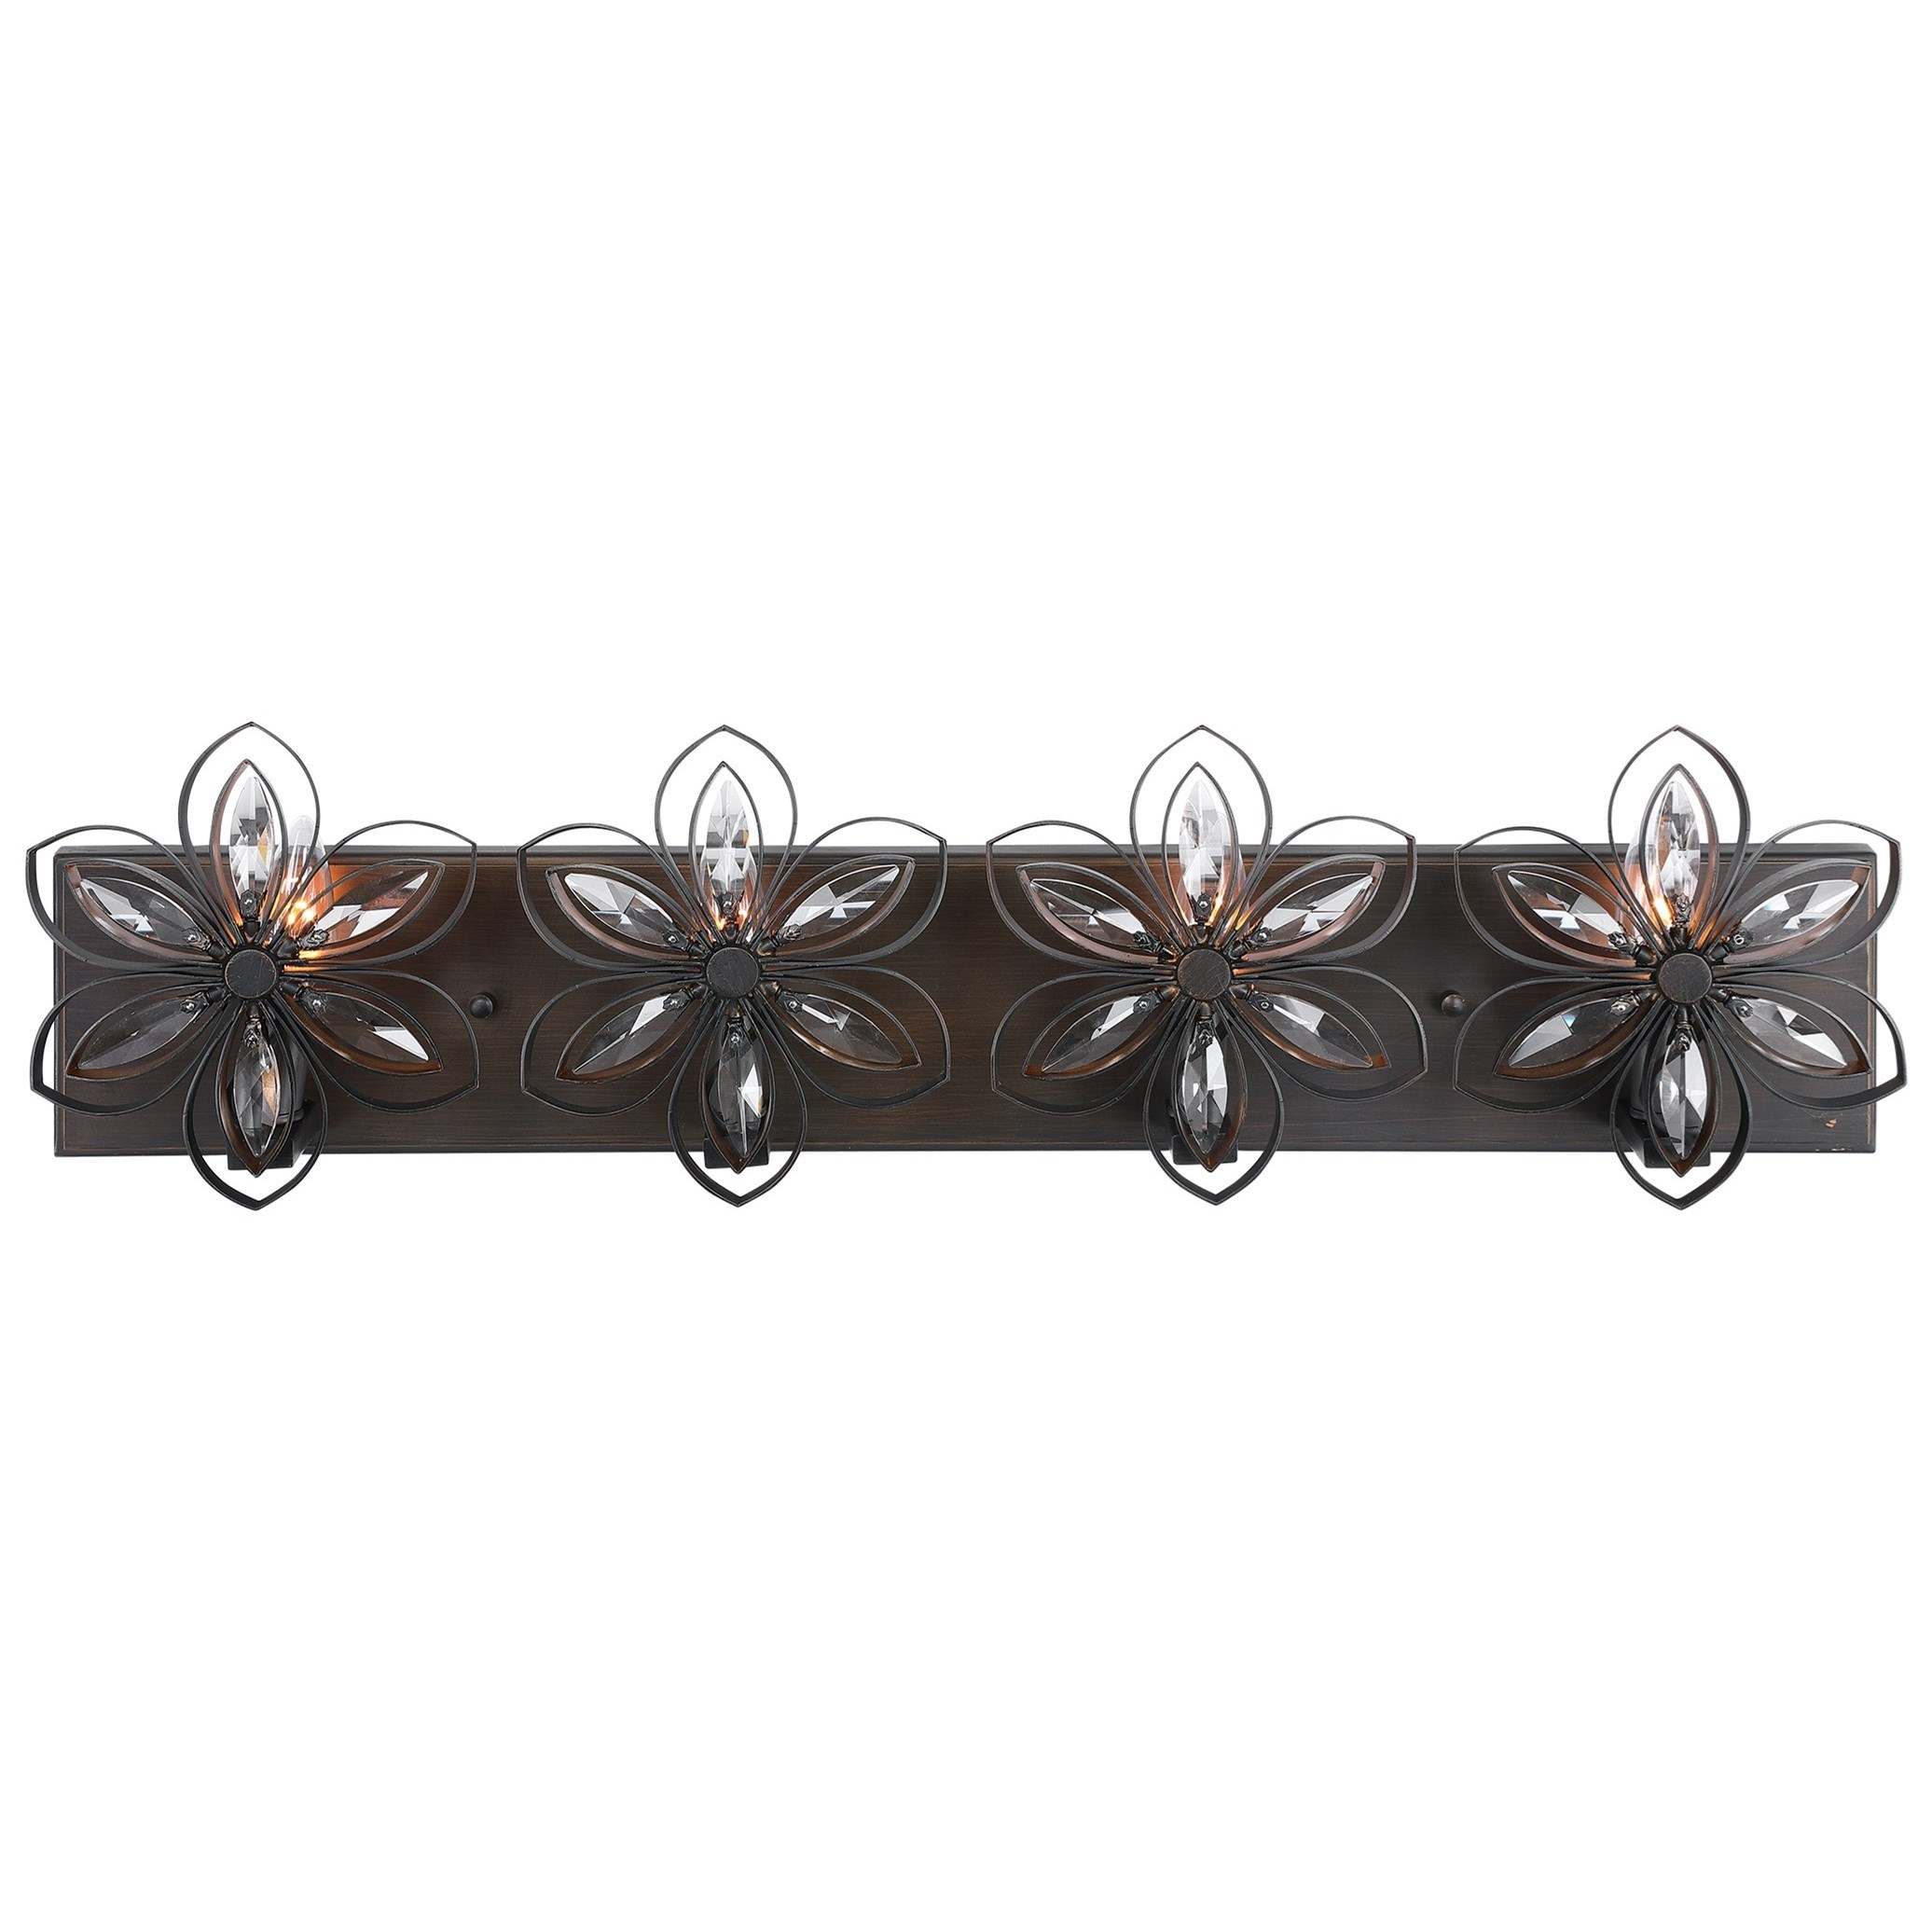 Lighting Fixtures - Wall Sconces Posey 4 Light Vanity Light by Uttermost at Mueller Furniture